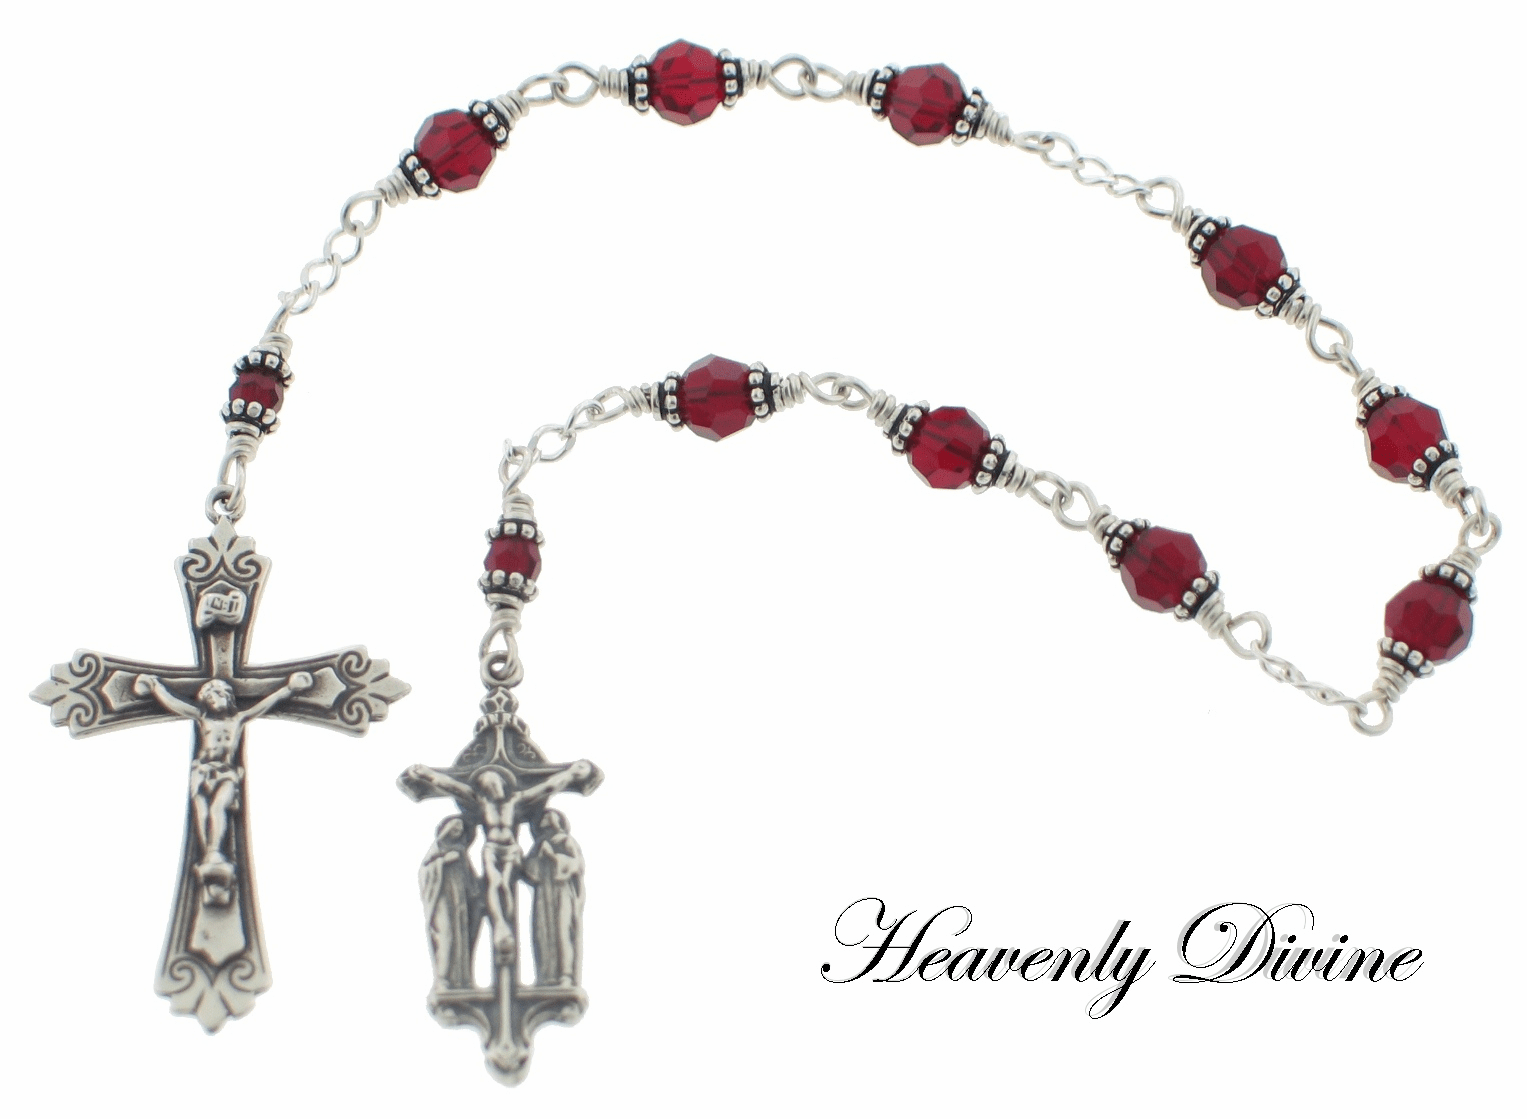 Handmade Swarovski Crystal Wire-Wrapped the Chaplet of the Crucifixion by Heavenly Divine